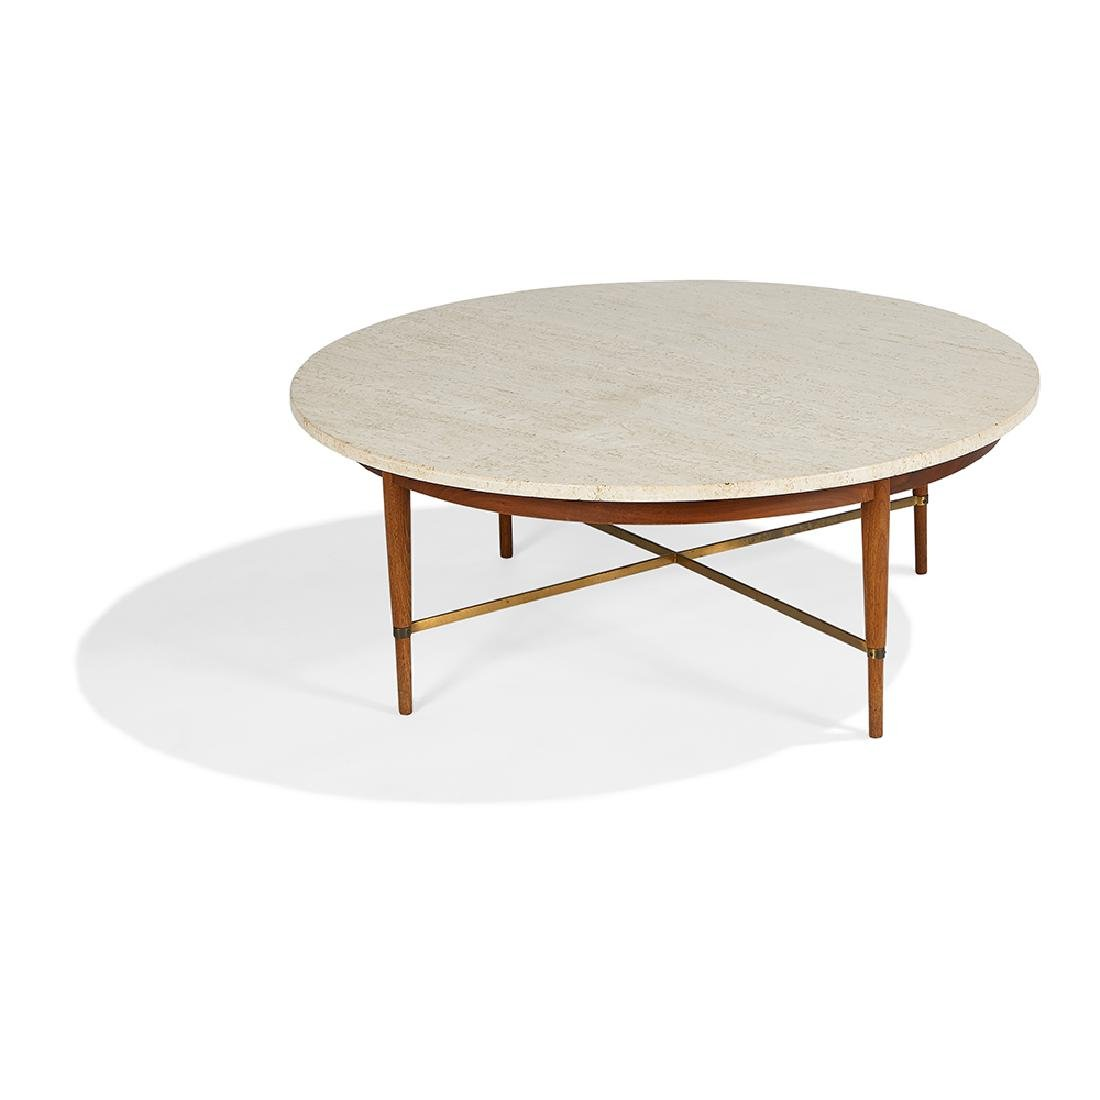 Paul McCobb for H. Sacks & Sons coffee table